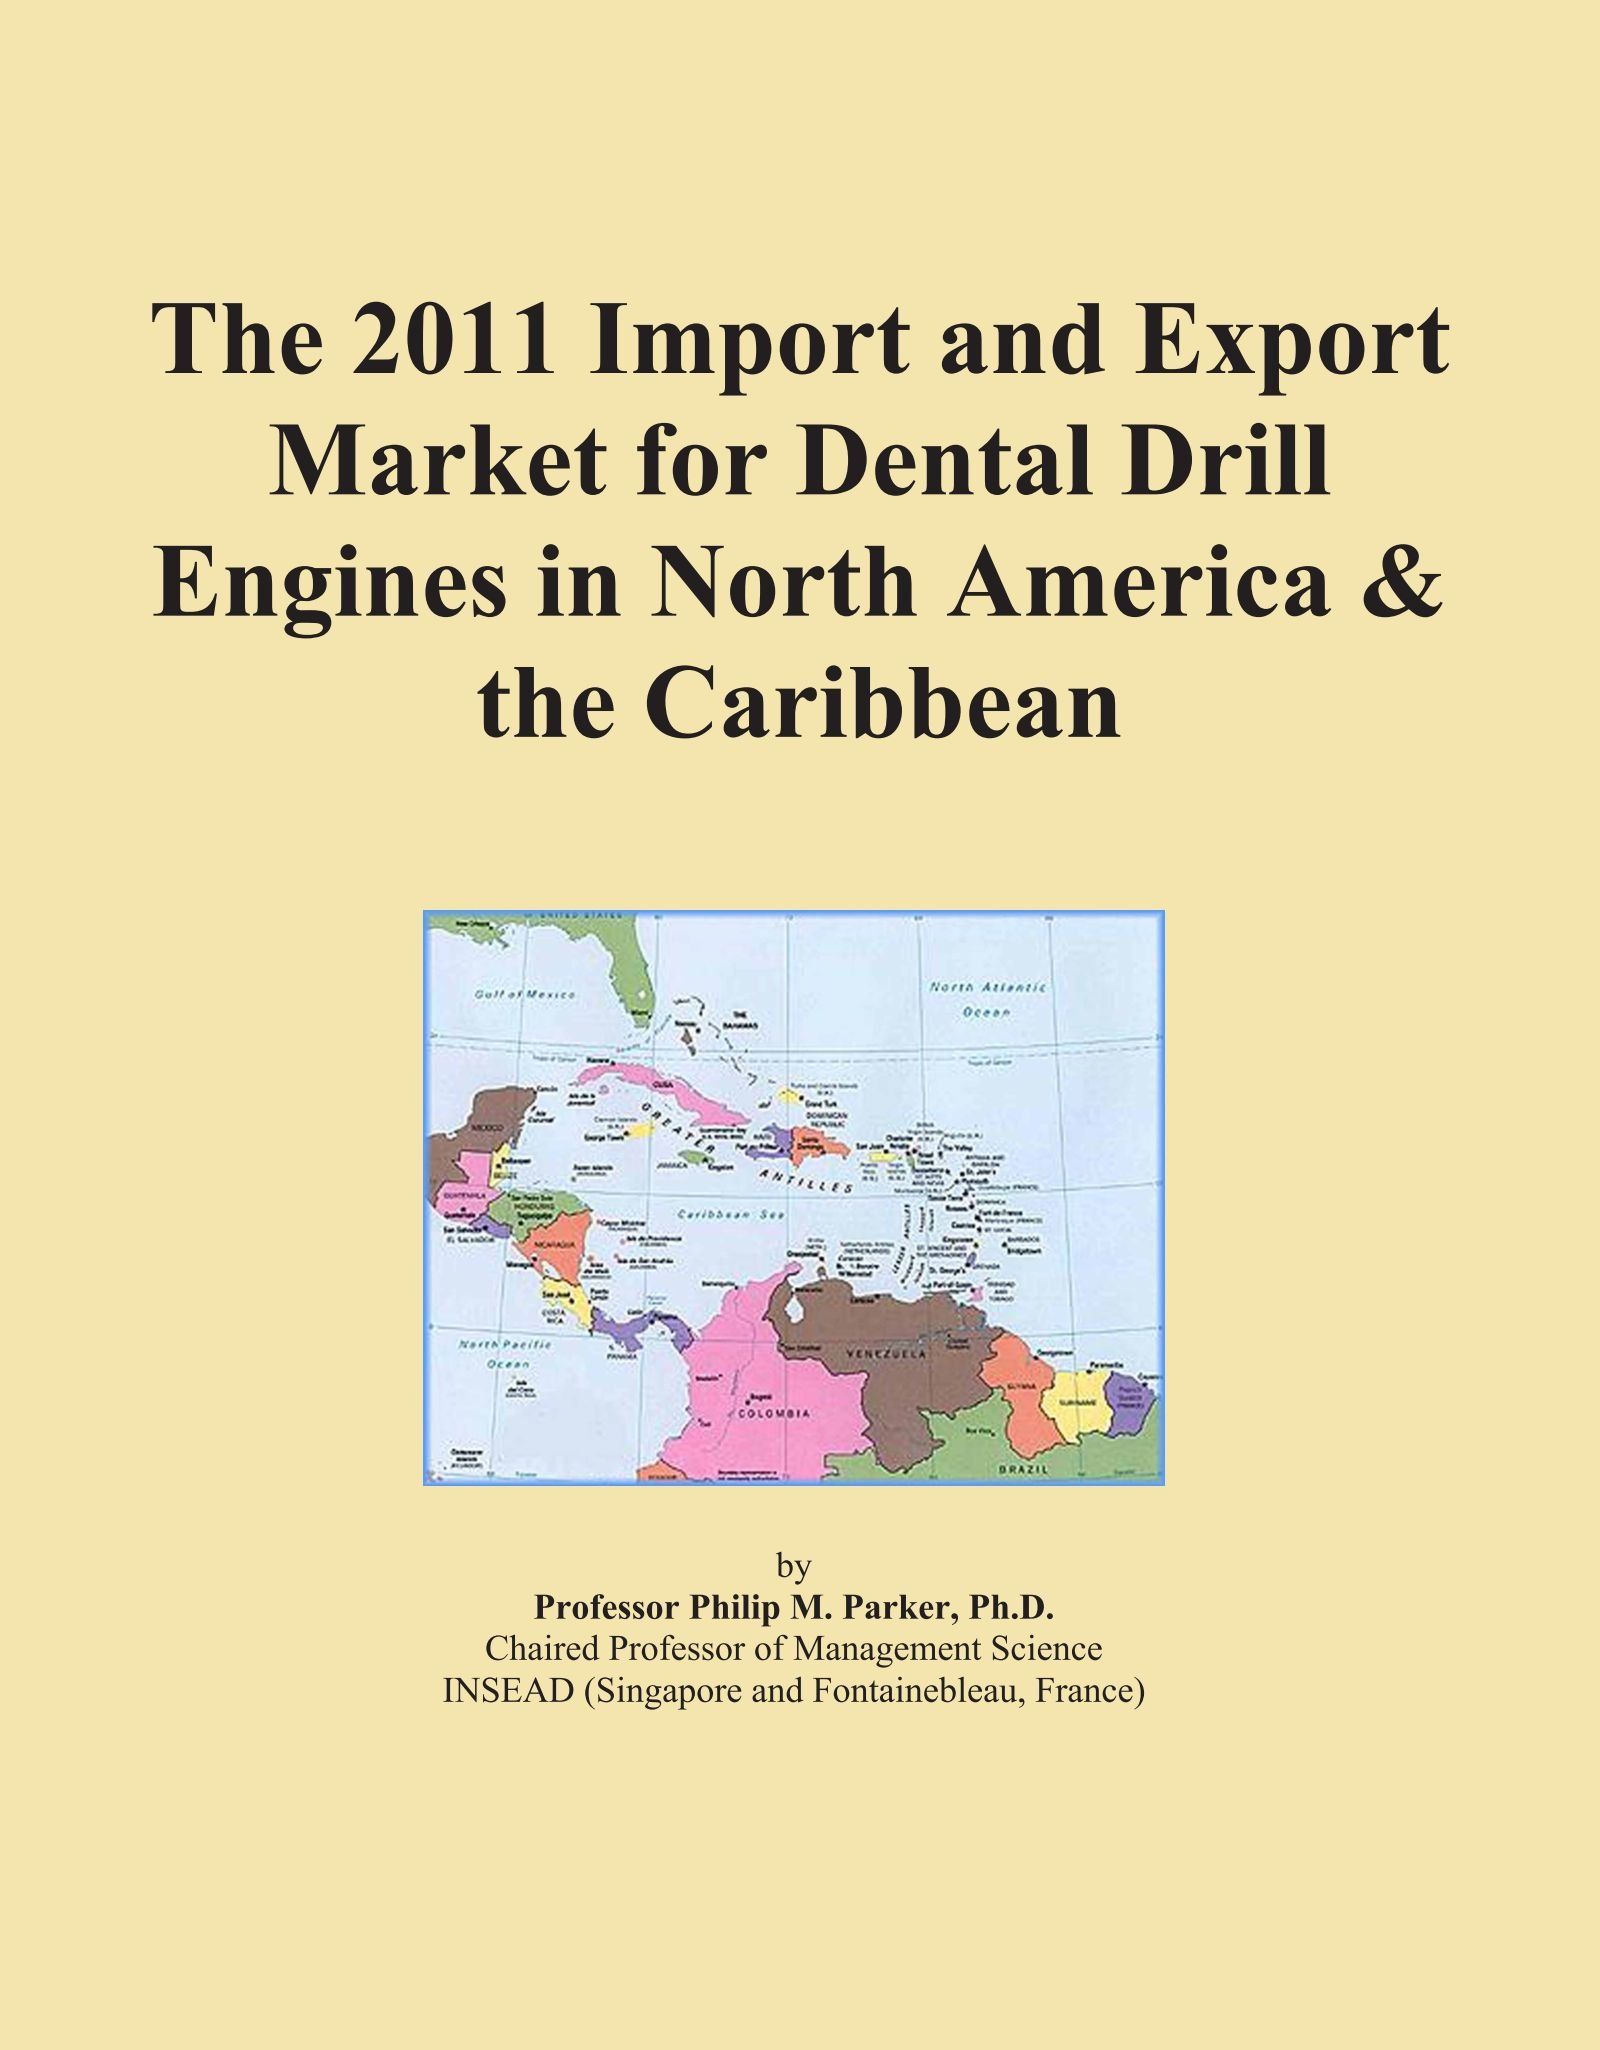 The 2011 Import and Export Market for Dental Drill Engines in North America & the Caribbean